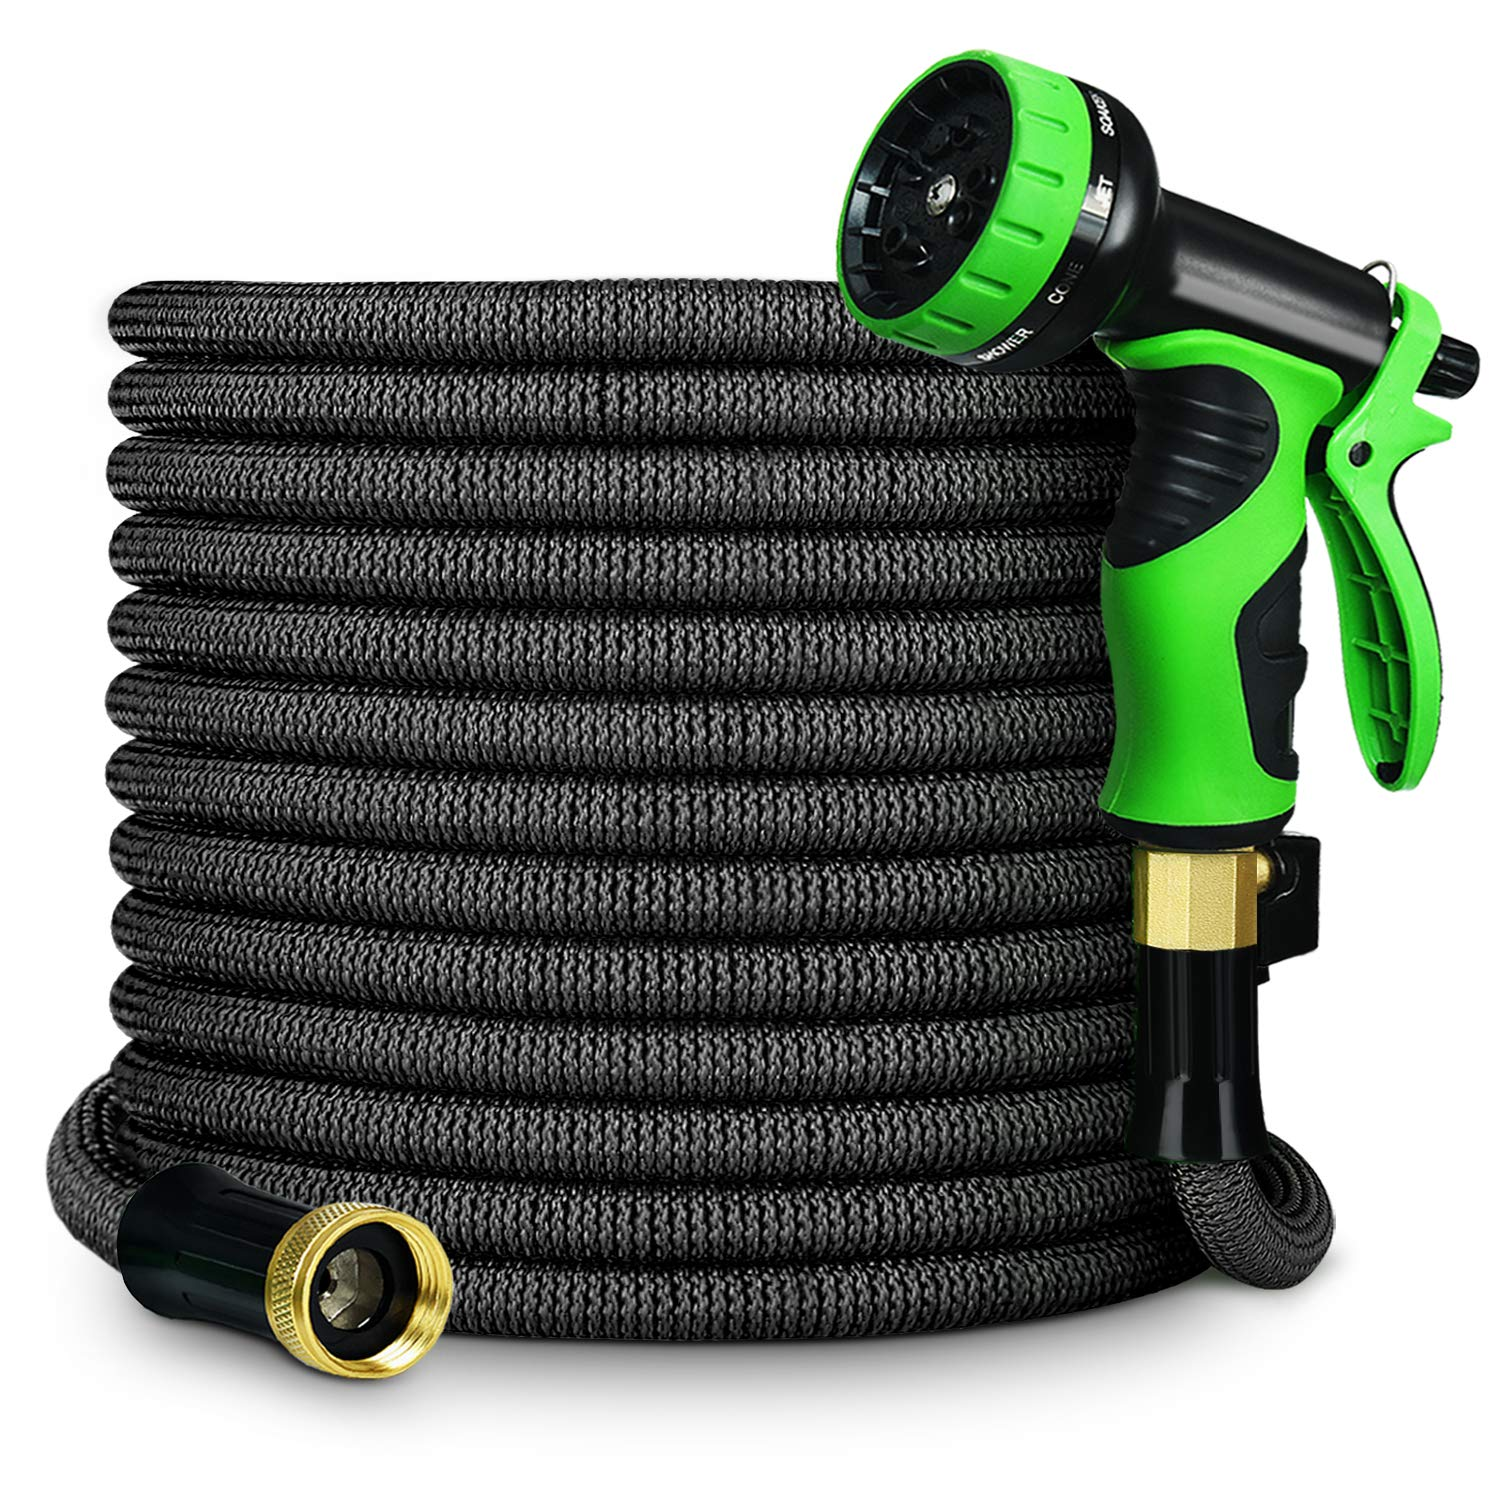 GarenJoy Expandable Garden Hose, 75ft Water Hose with All Improved Leakproof 3/4 Solid Brass Connector, 3300D Stretch Fabric with 9 Function Spray Nozzle High Pressure Flexible Expanding Hose, Black